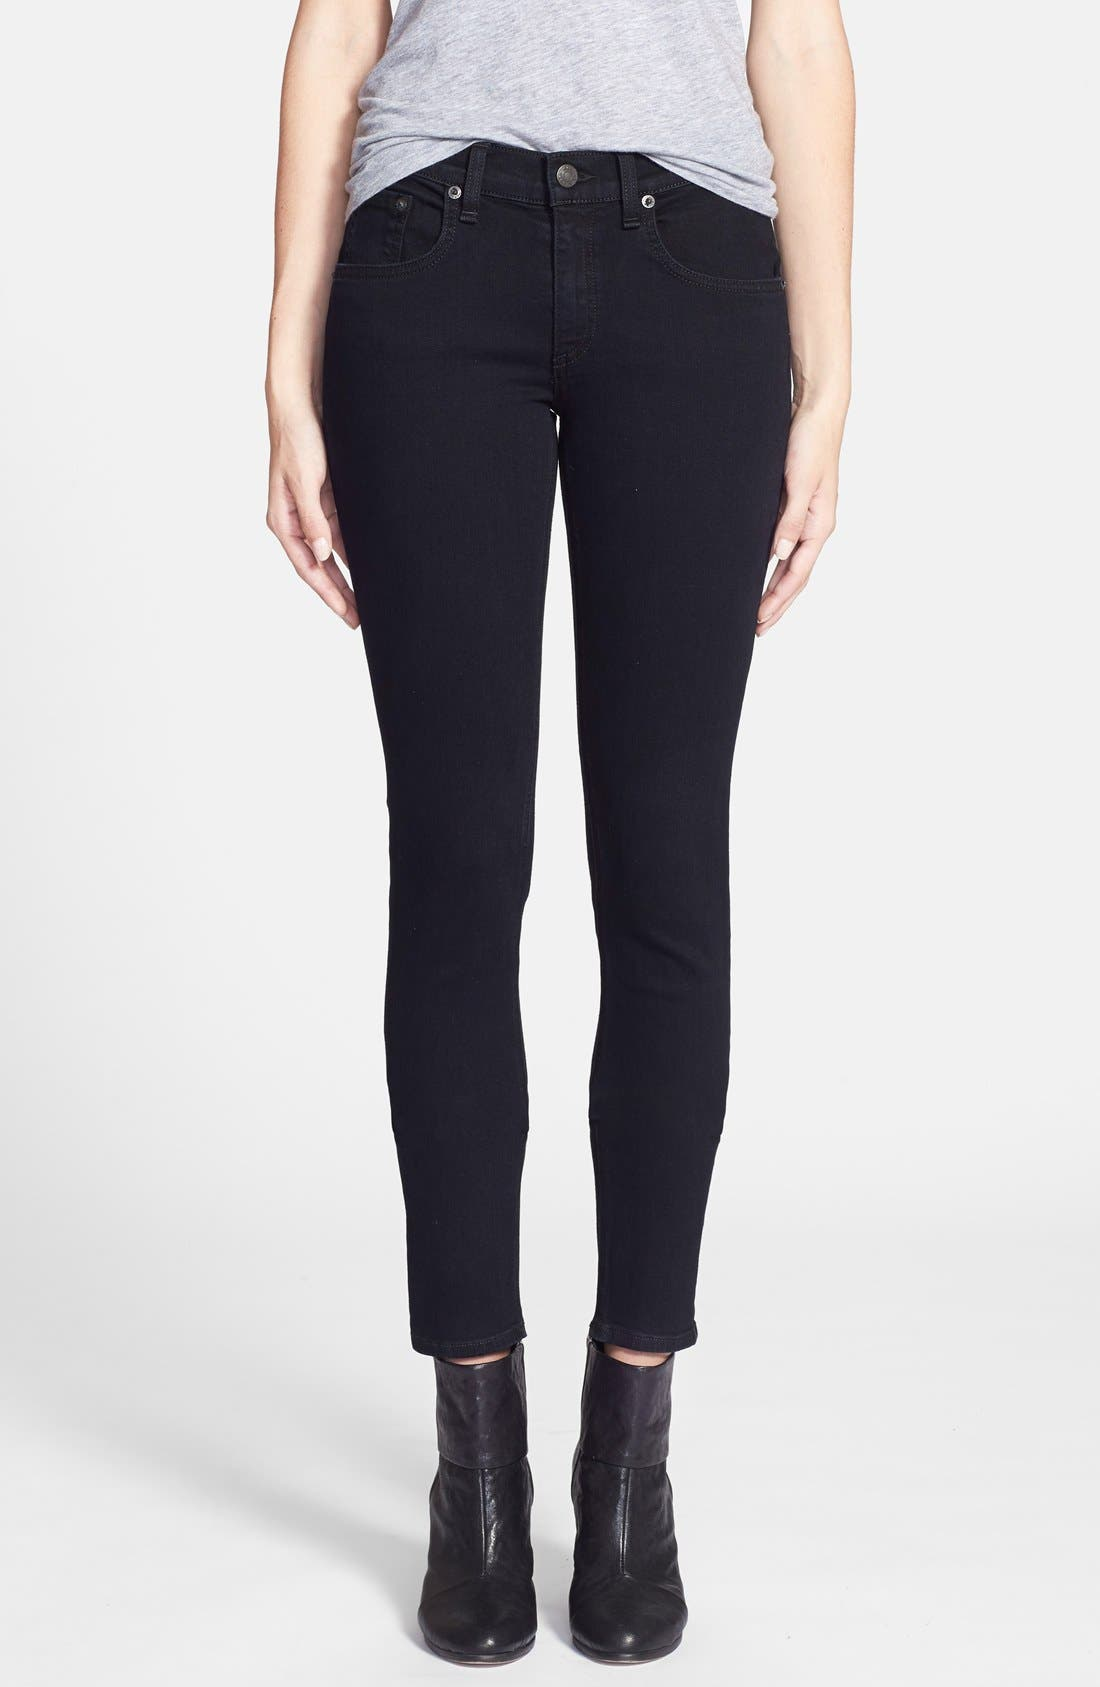 'The Skinny' Stretch Jeans,                             Main thumbnail 1, color,